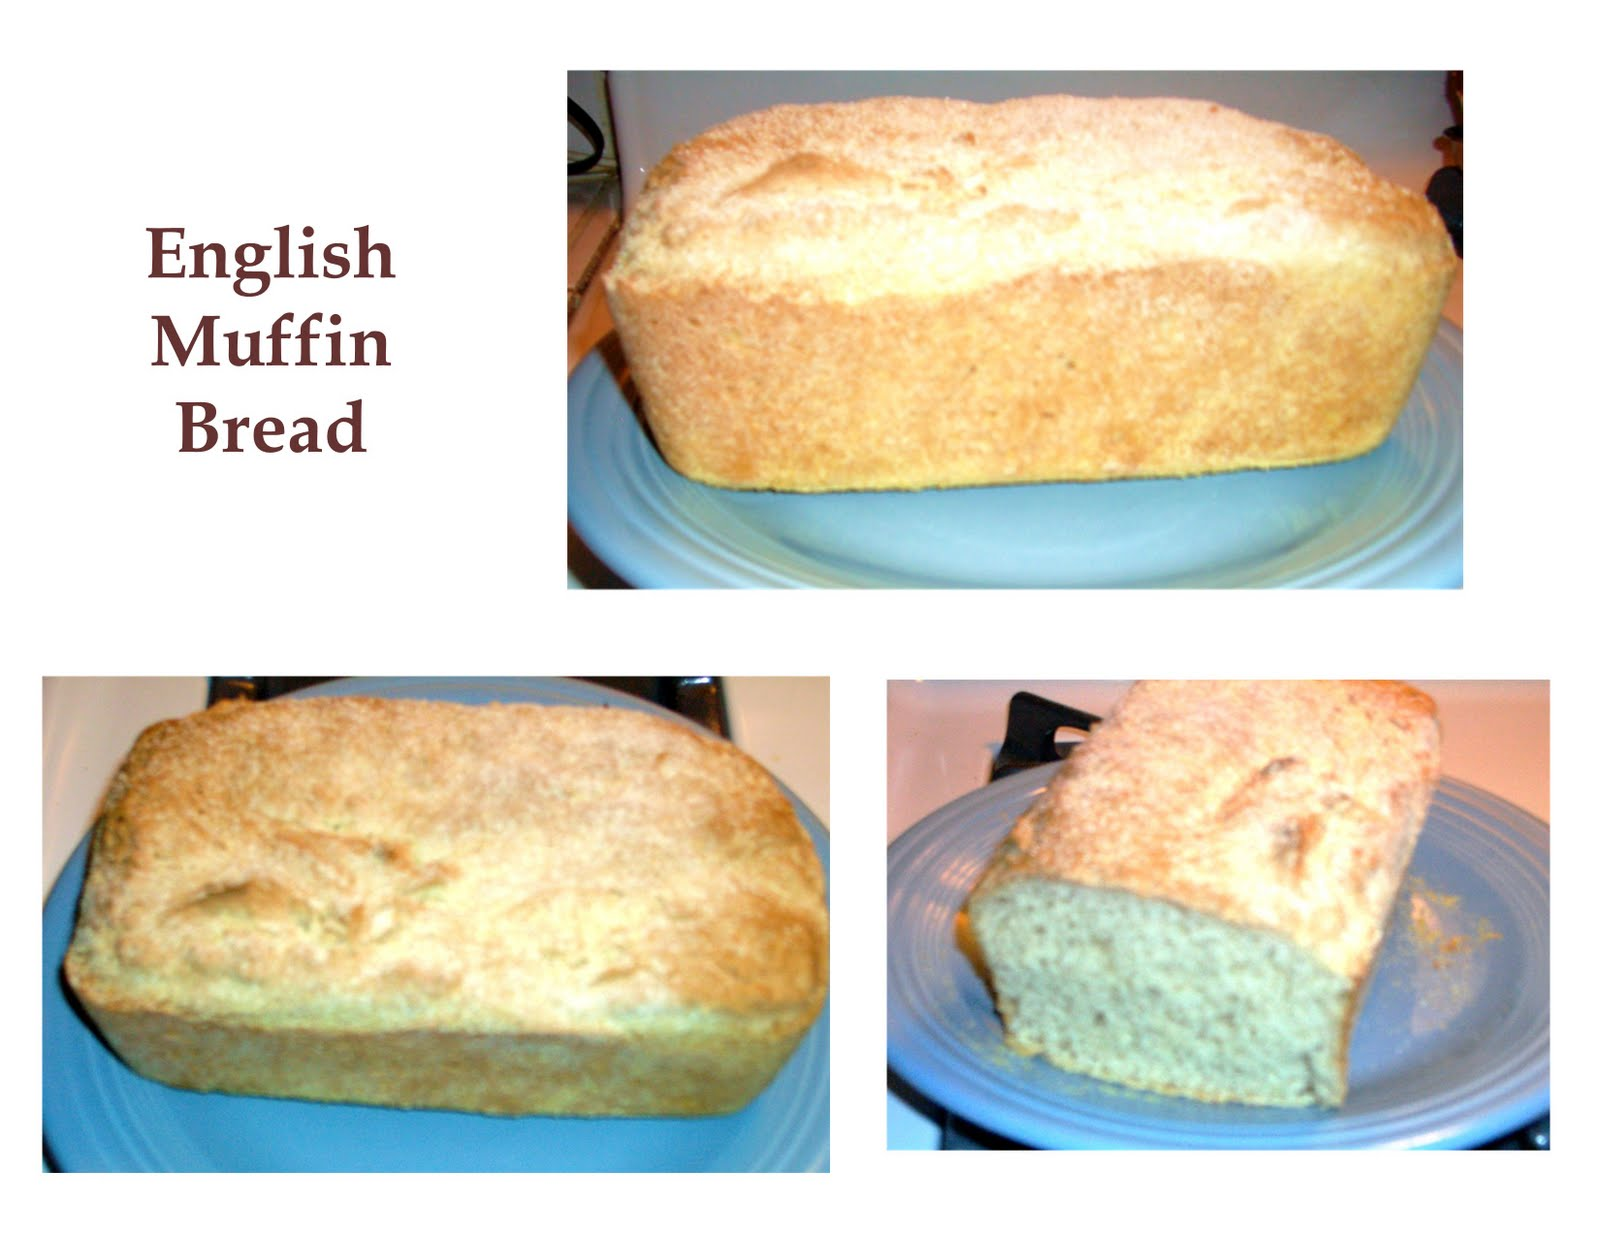 Hodgepodge from The Geranium Farm: English Muffin Bread